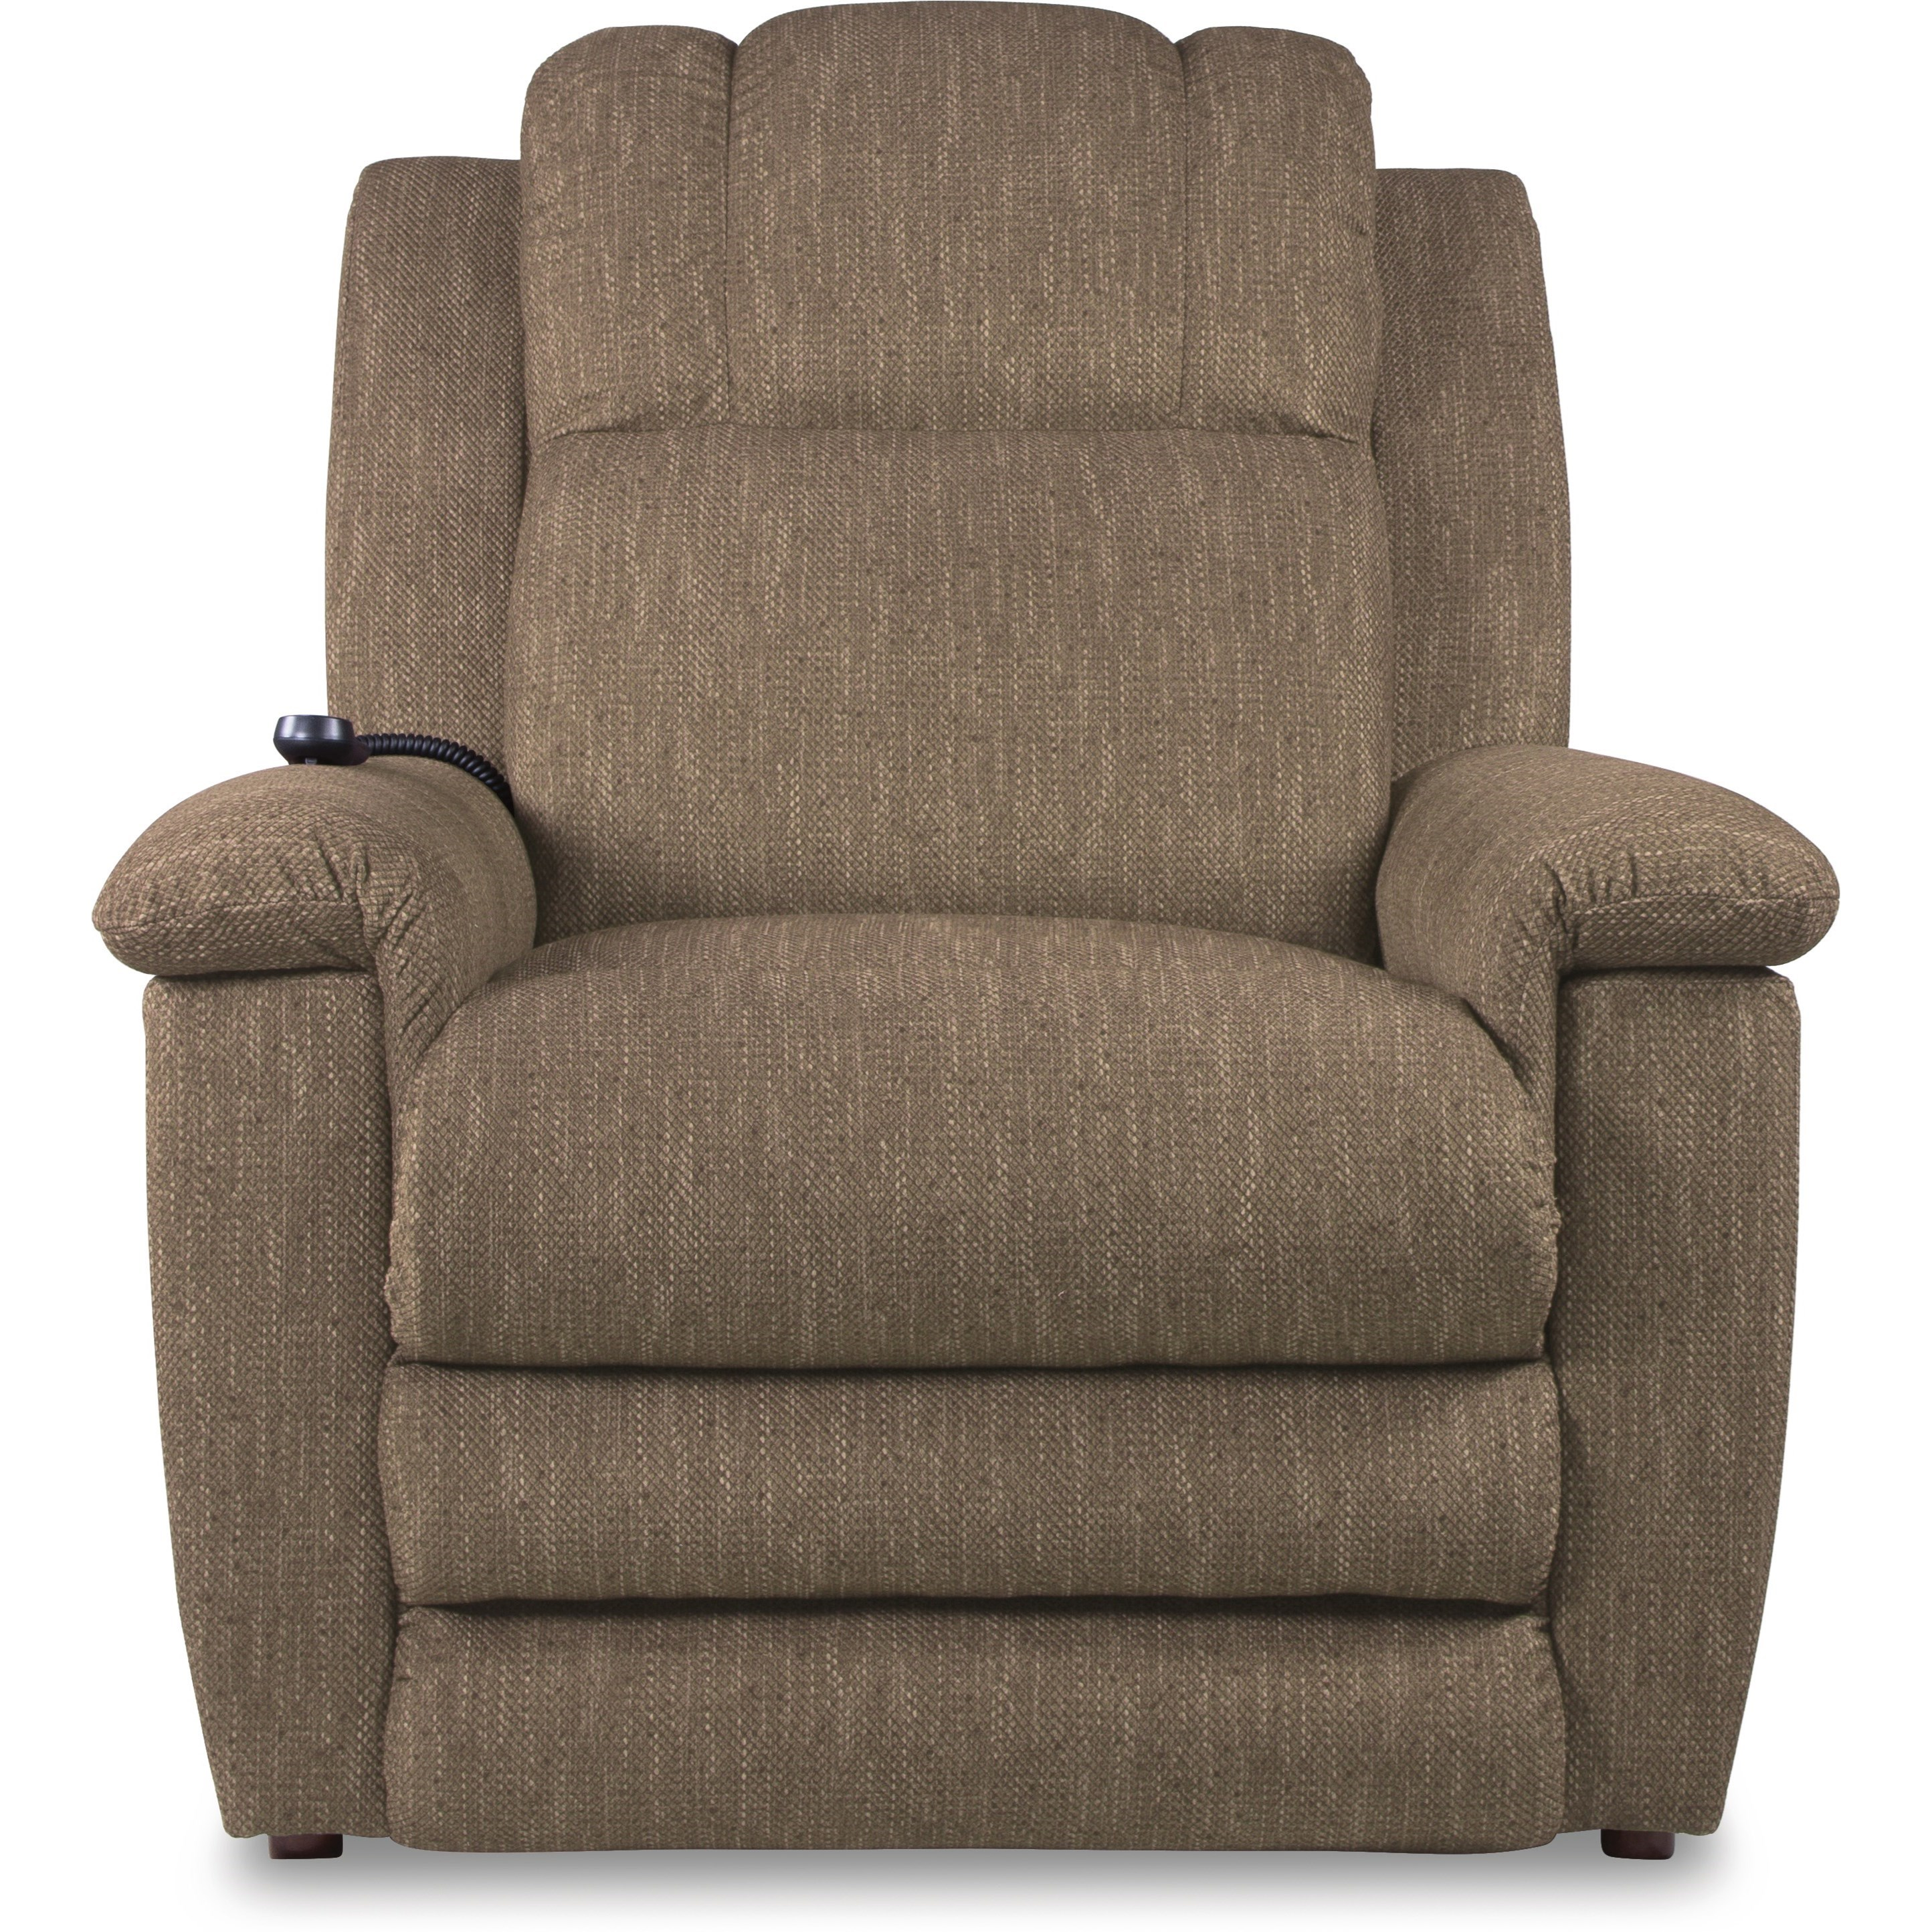 Clayton Gold Luxury Lift Power Recliner with 6 Motor